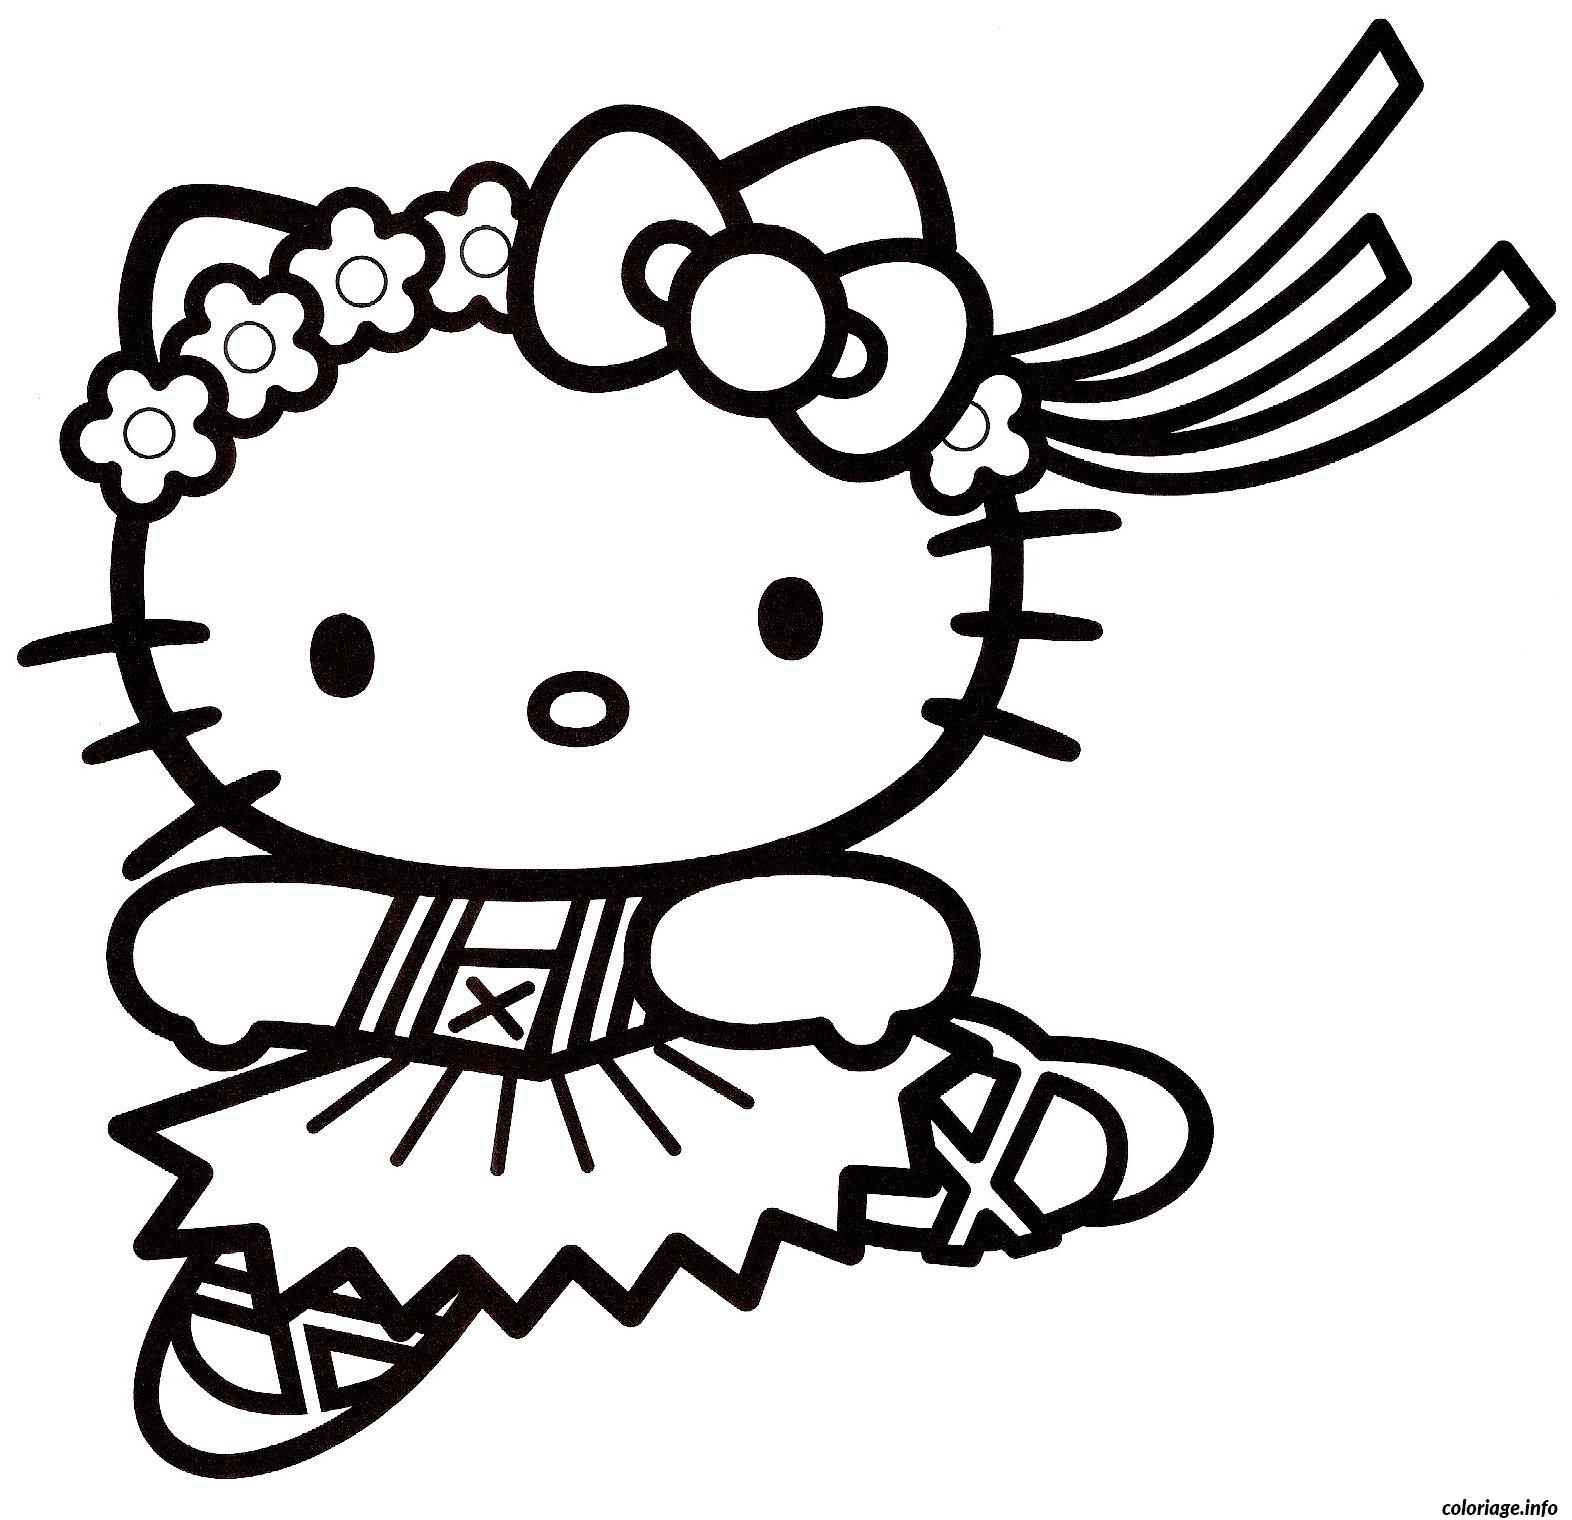 Coloriage dessin hello kitty 3 - Coloriage hello kitty jeux ...